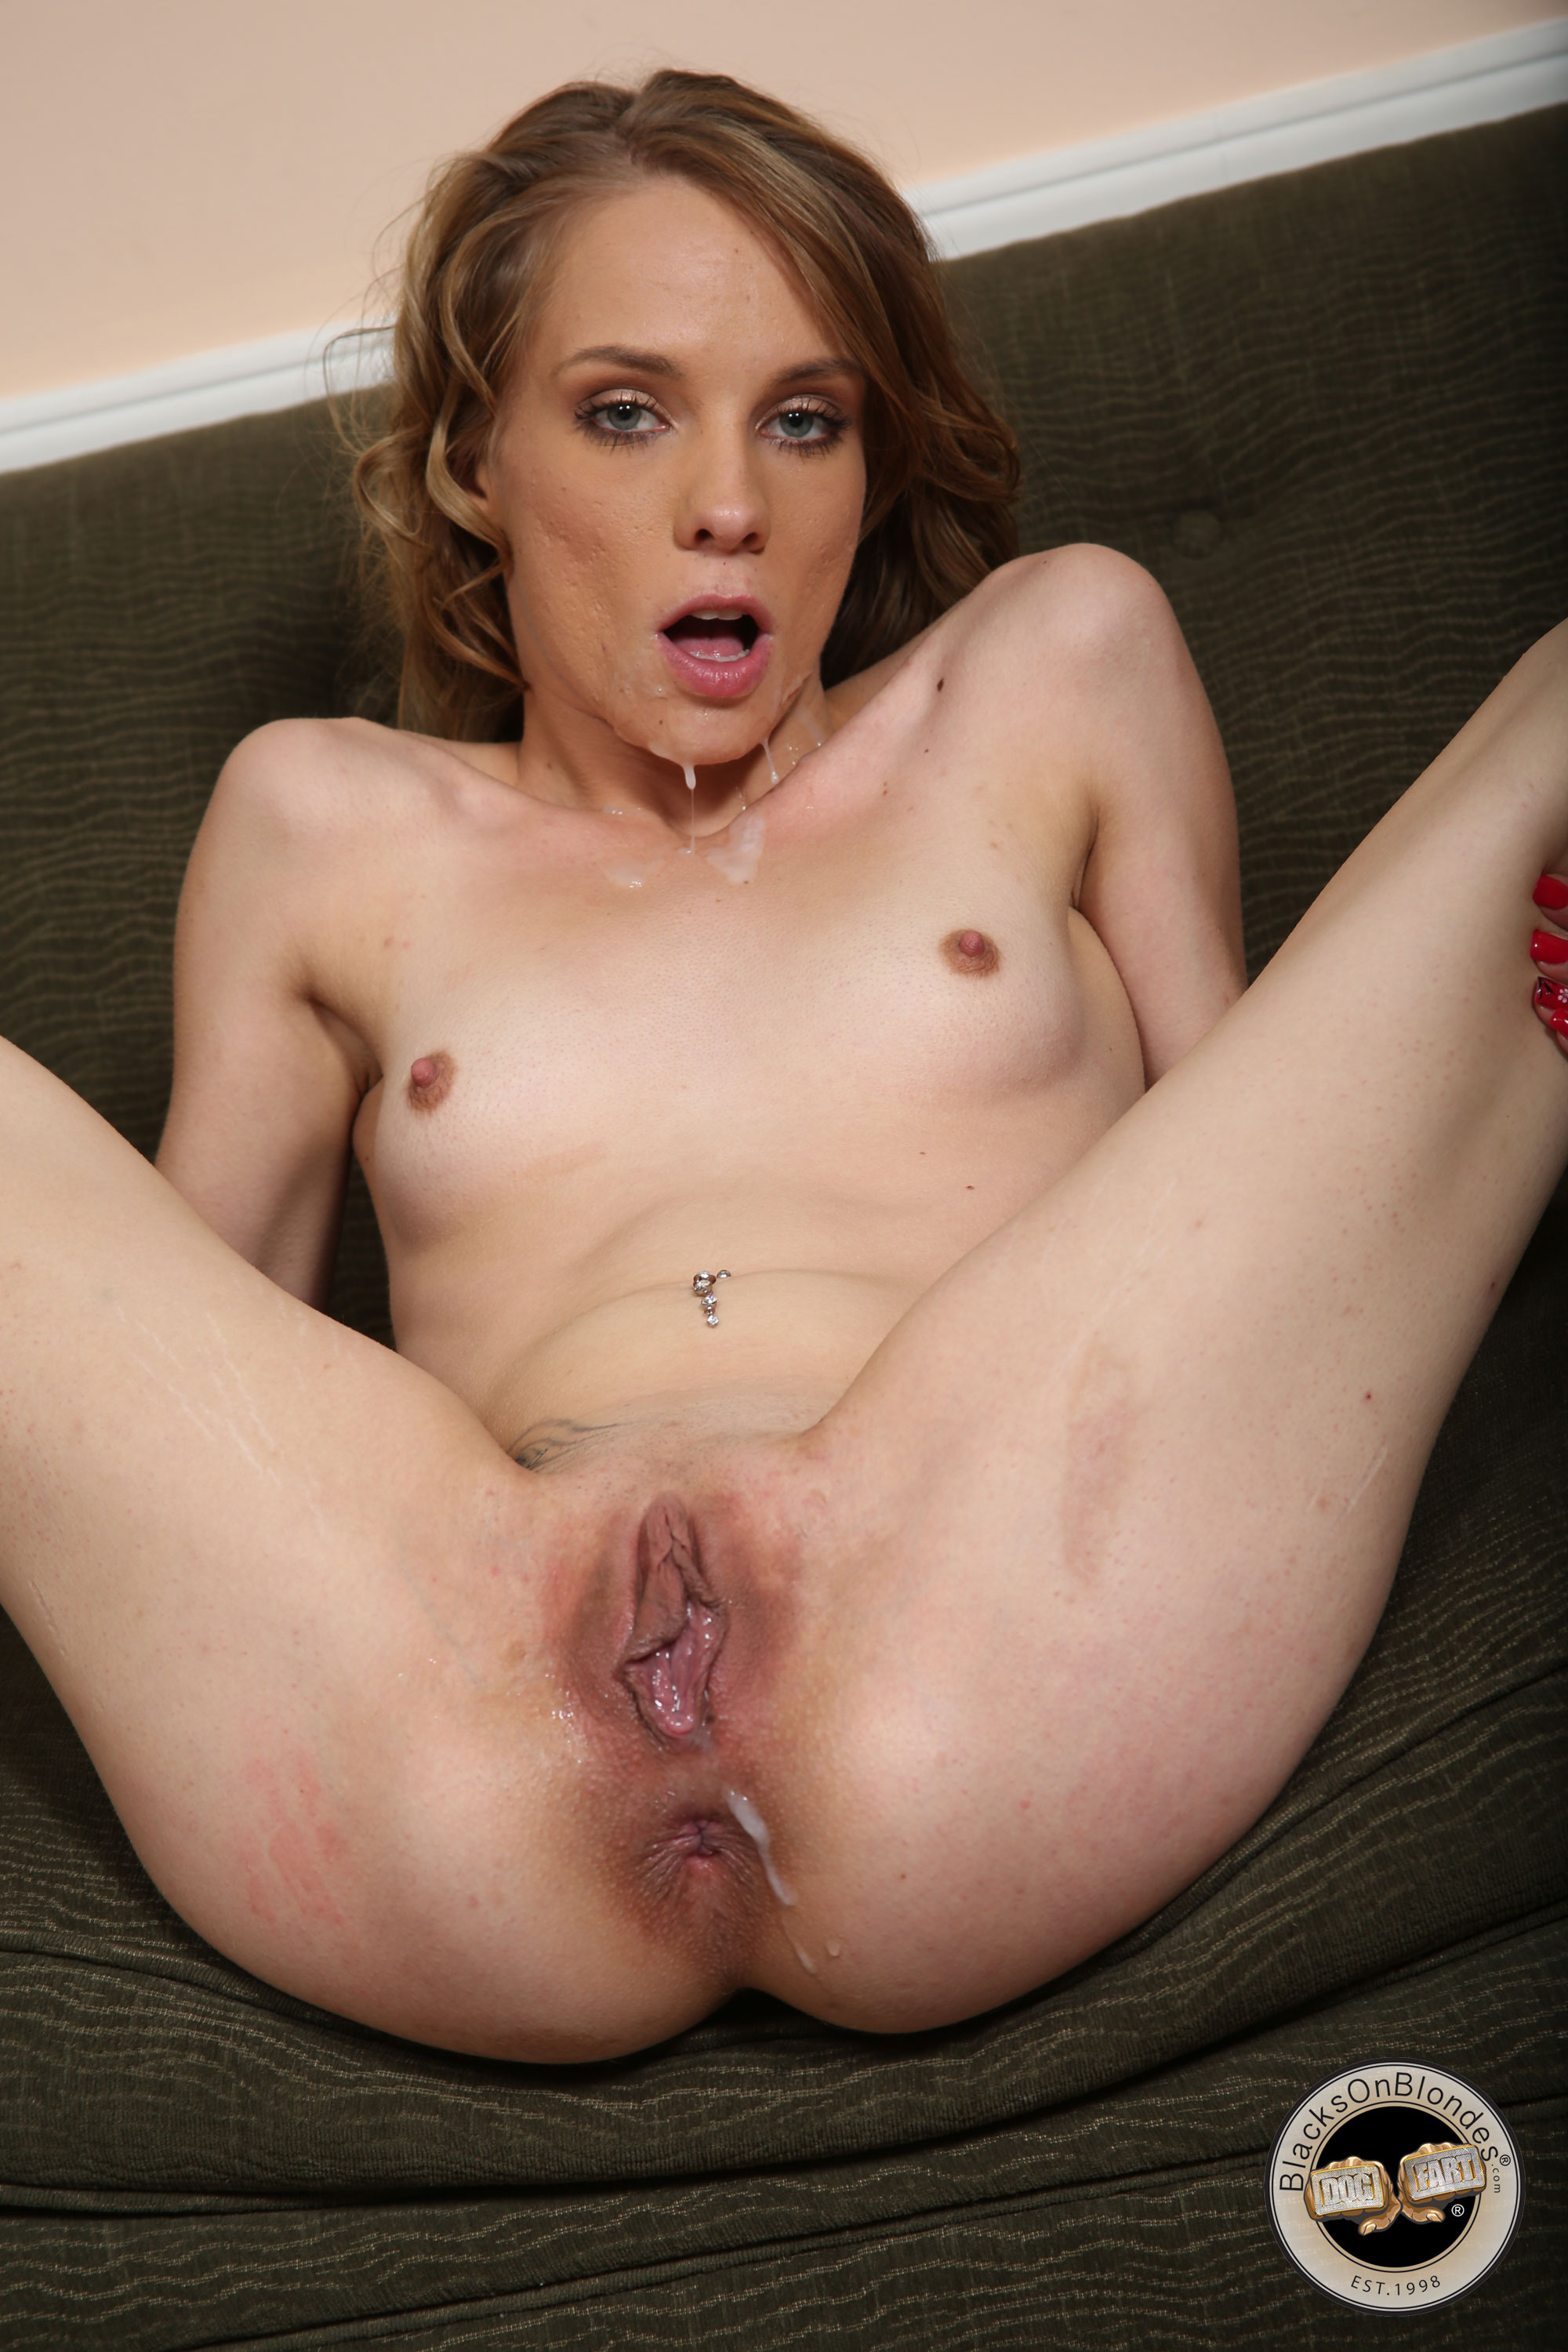 Abigaile johnson big meaty snack for me 5